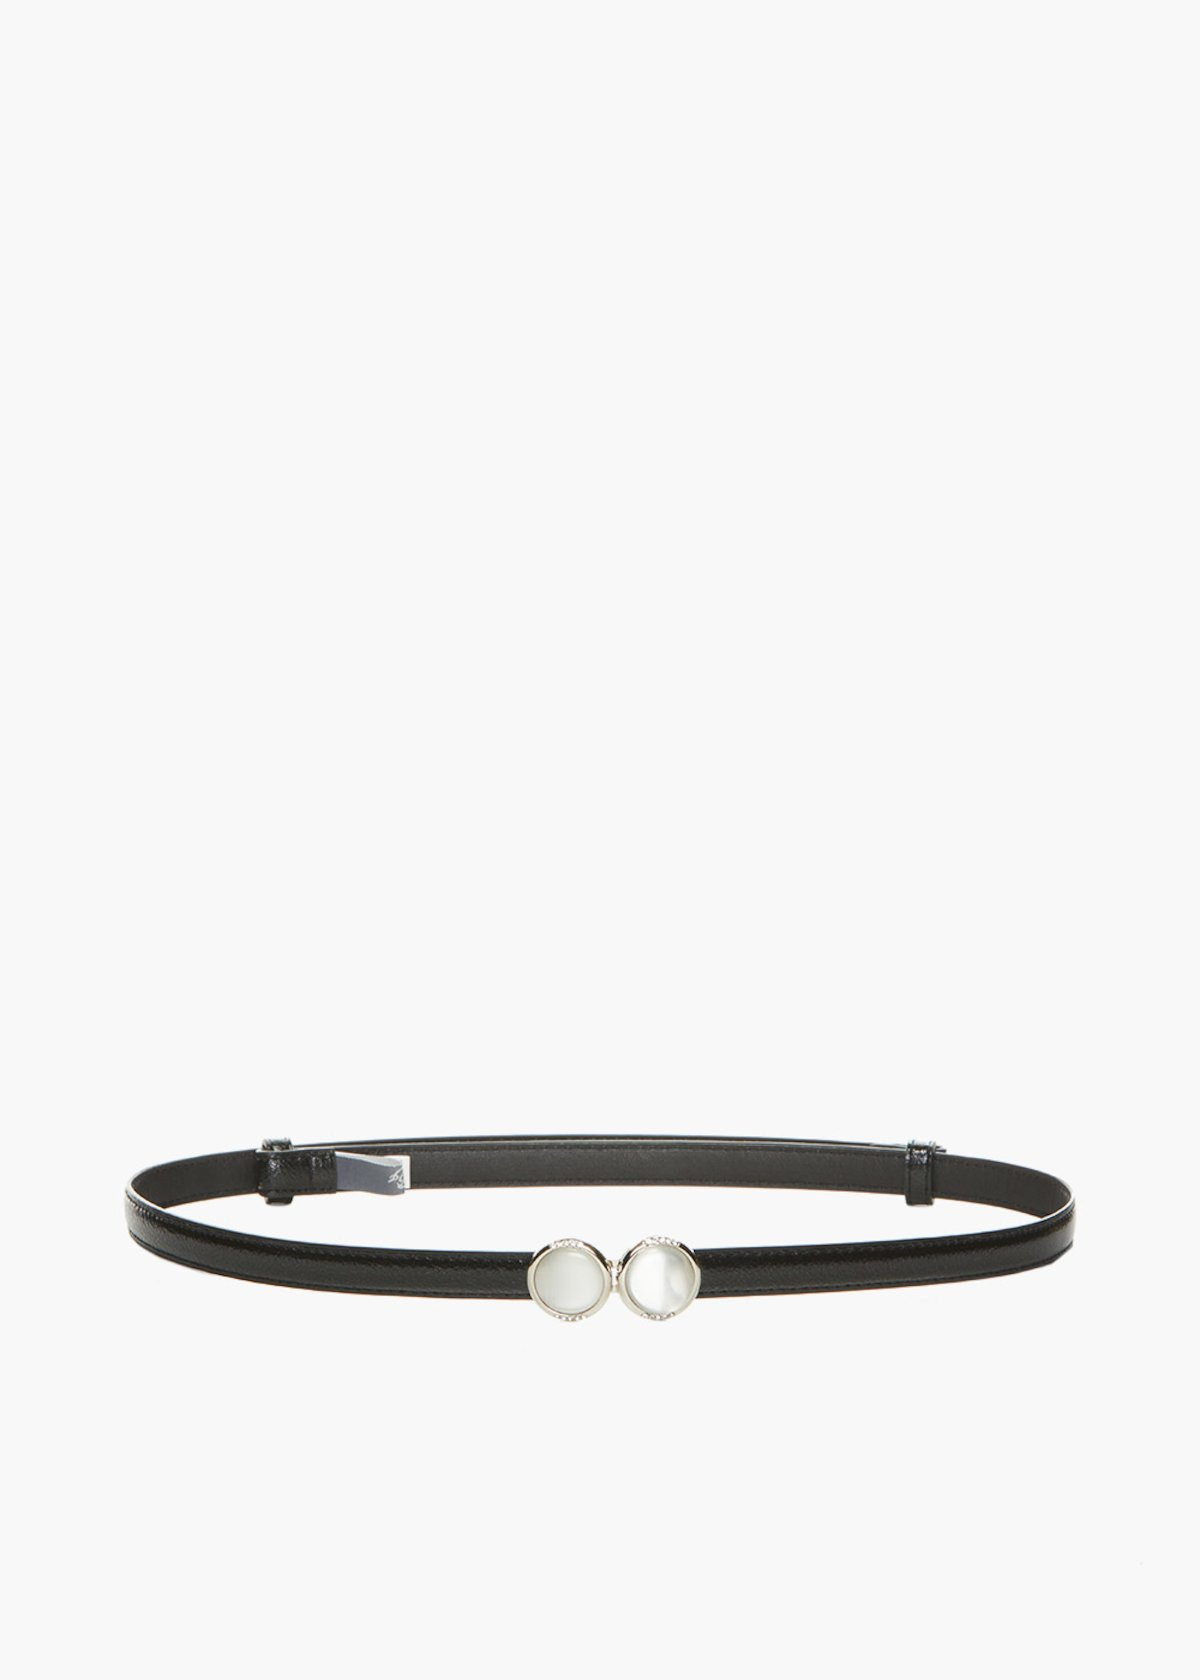 Faux leather Chiacy belt deer print and pearls fastening - Black - Woman - Category image